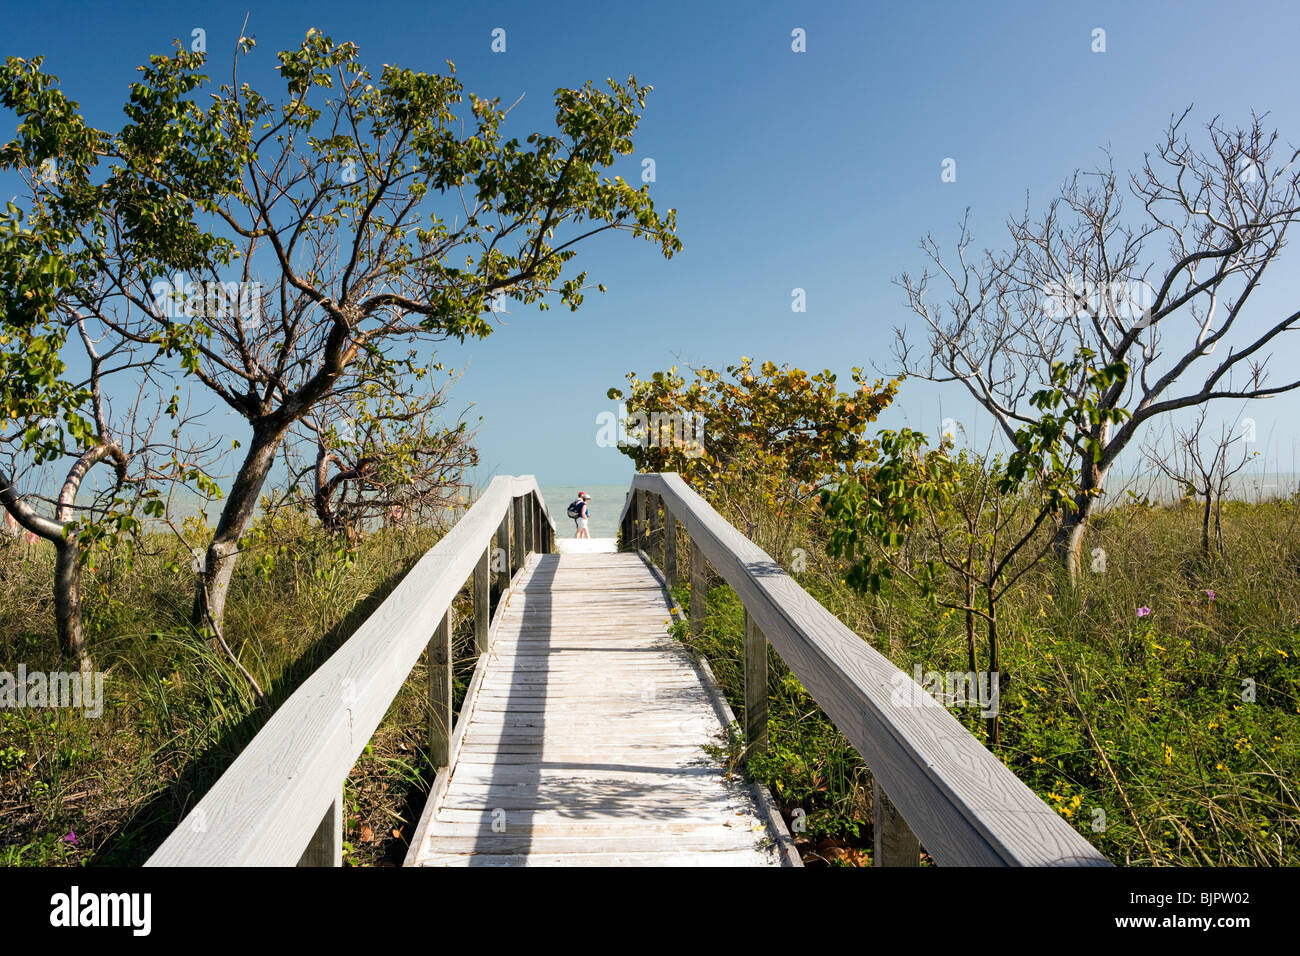 Boardwalk to Beach - Sanibel Island, Florida  USA Stock Photo